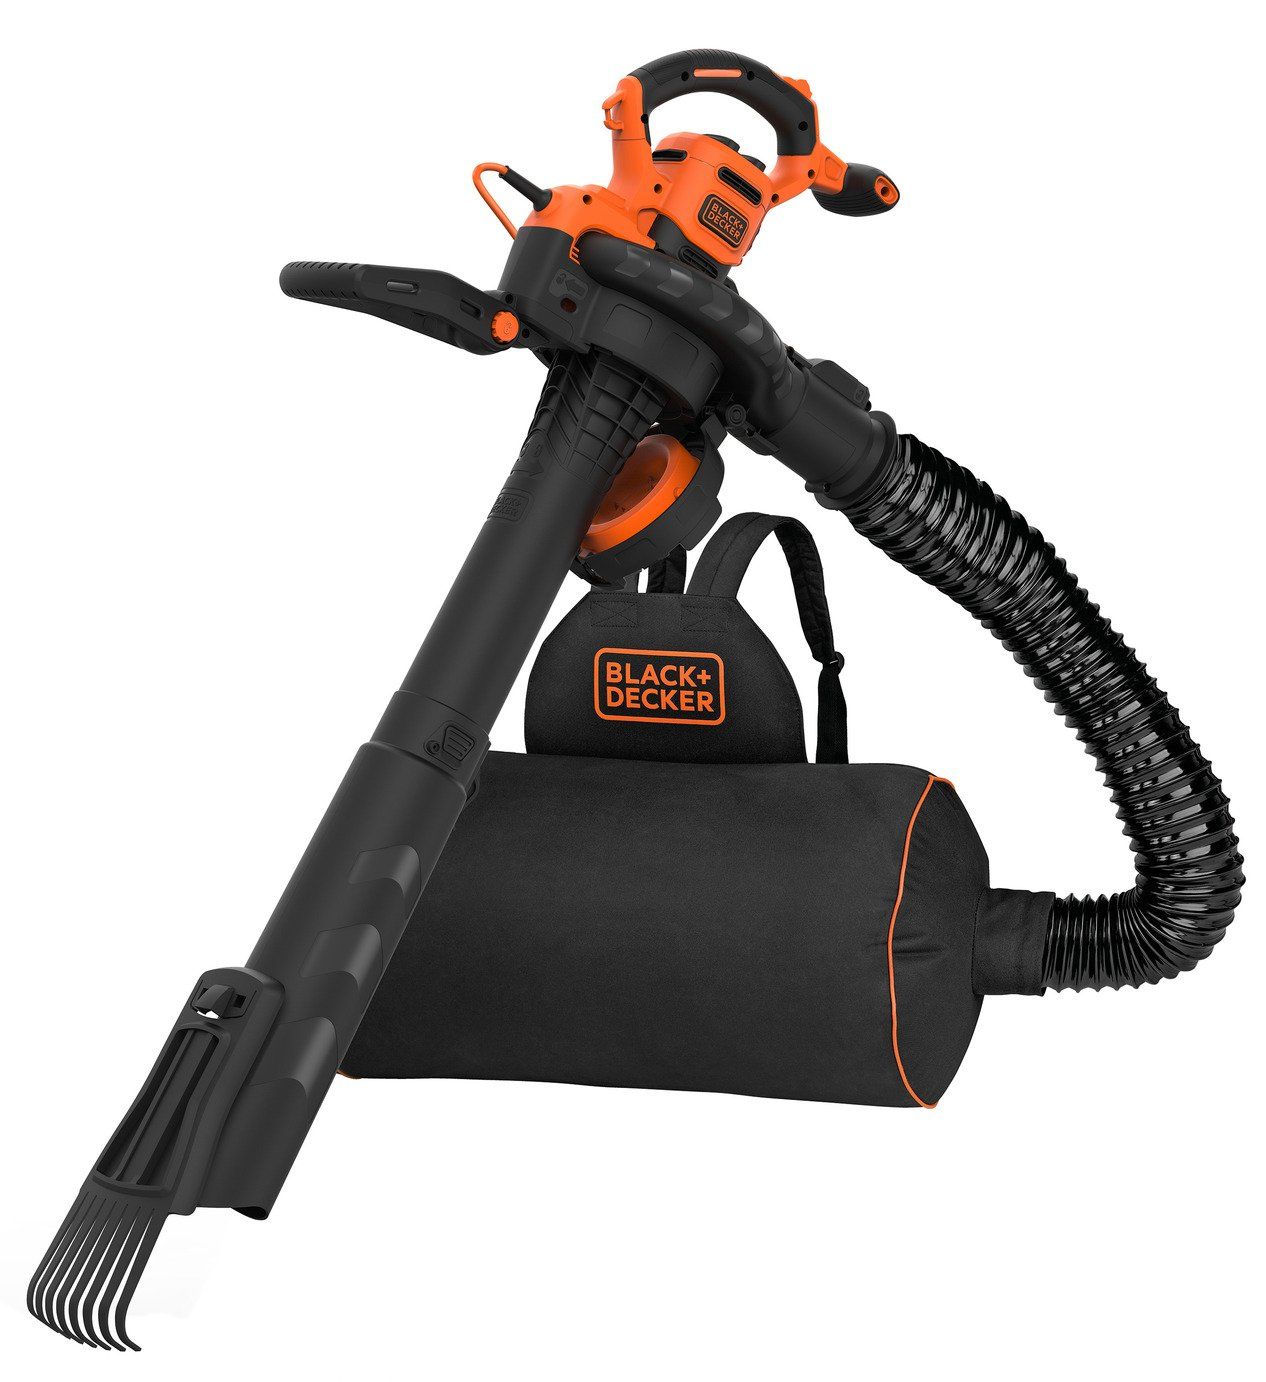 Black + Decker Garden Blow Vac - 3000W